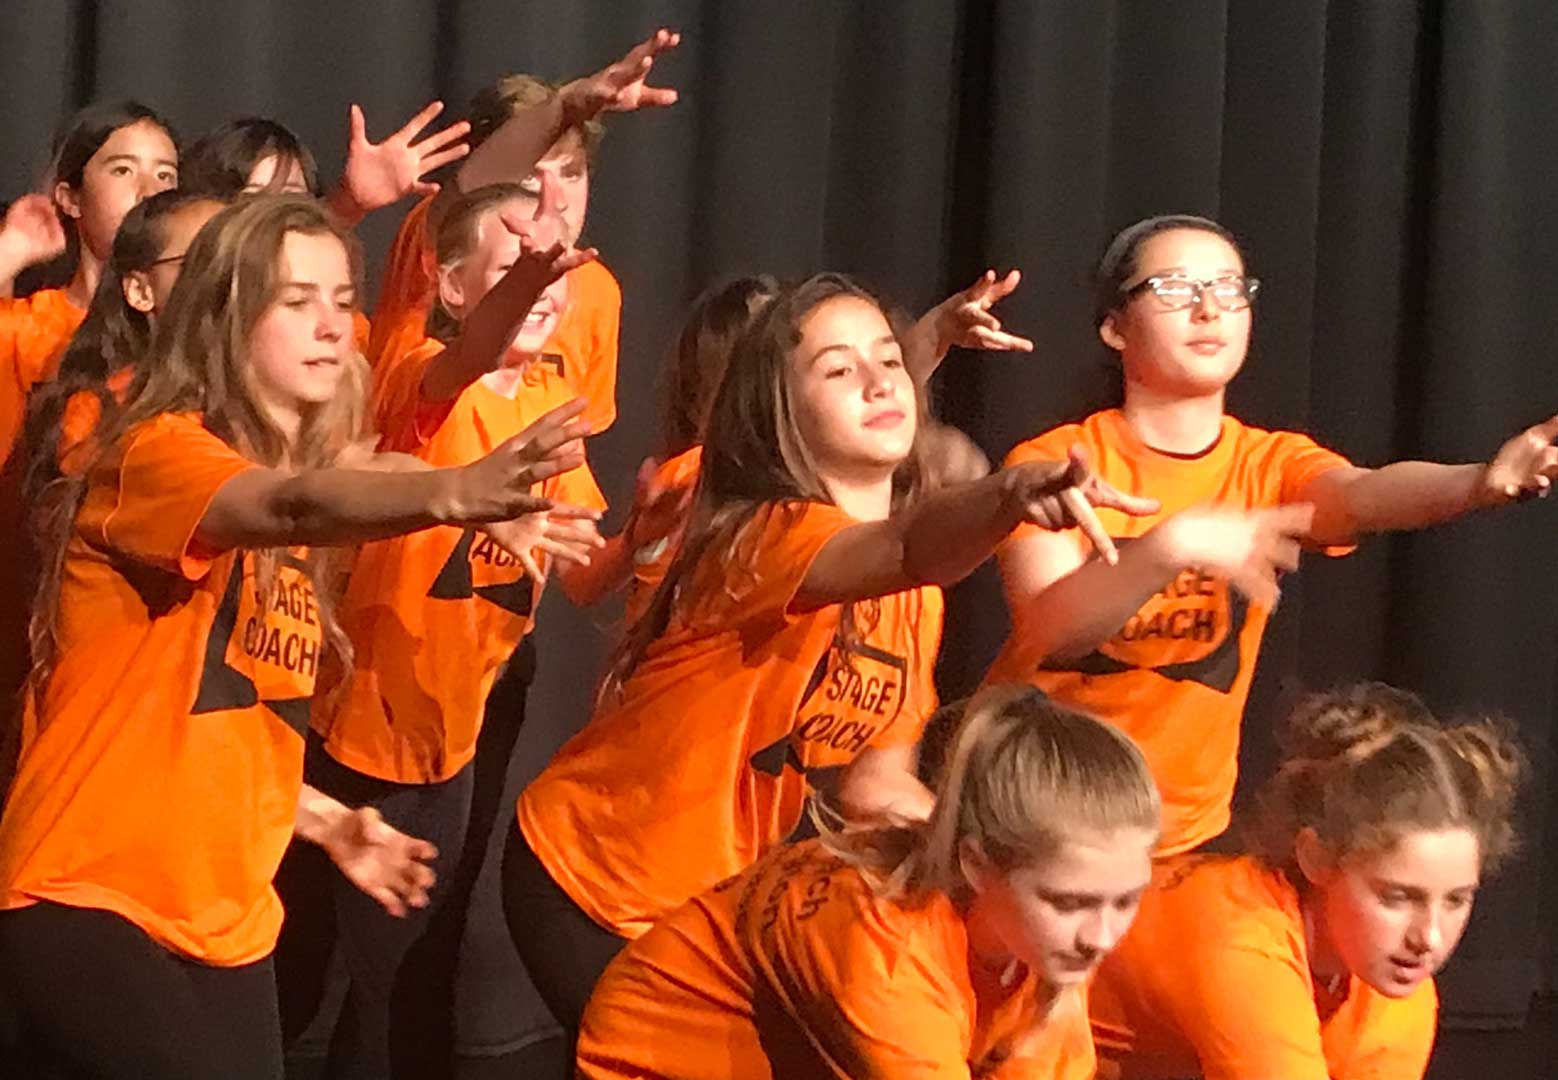 Singing Dancing Acting: The Stagecoach Kensington team teaches students aged 4-18 how to perform on and off the stage